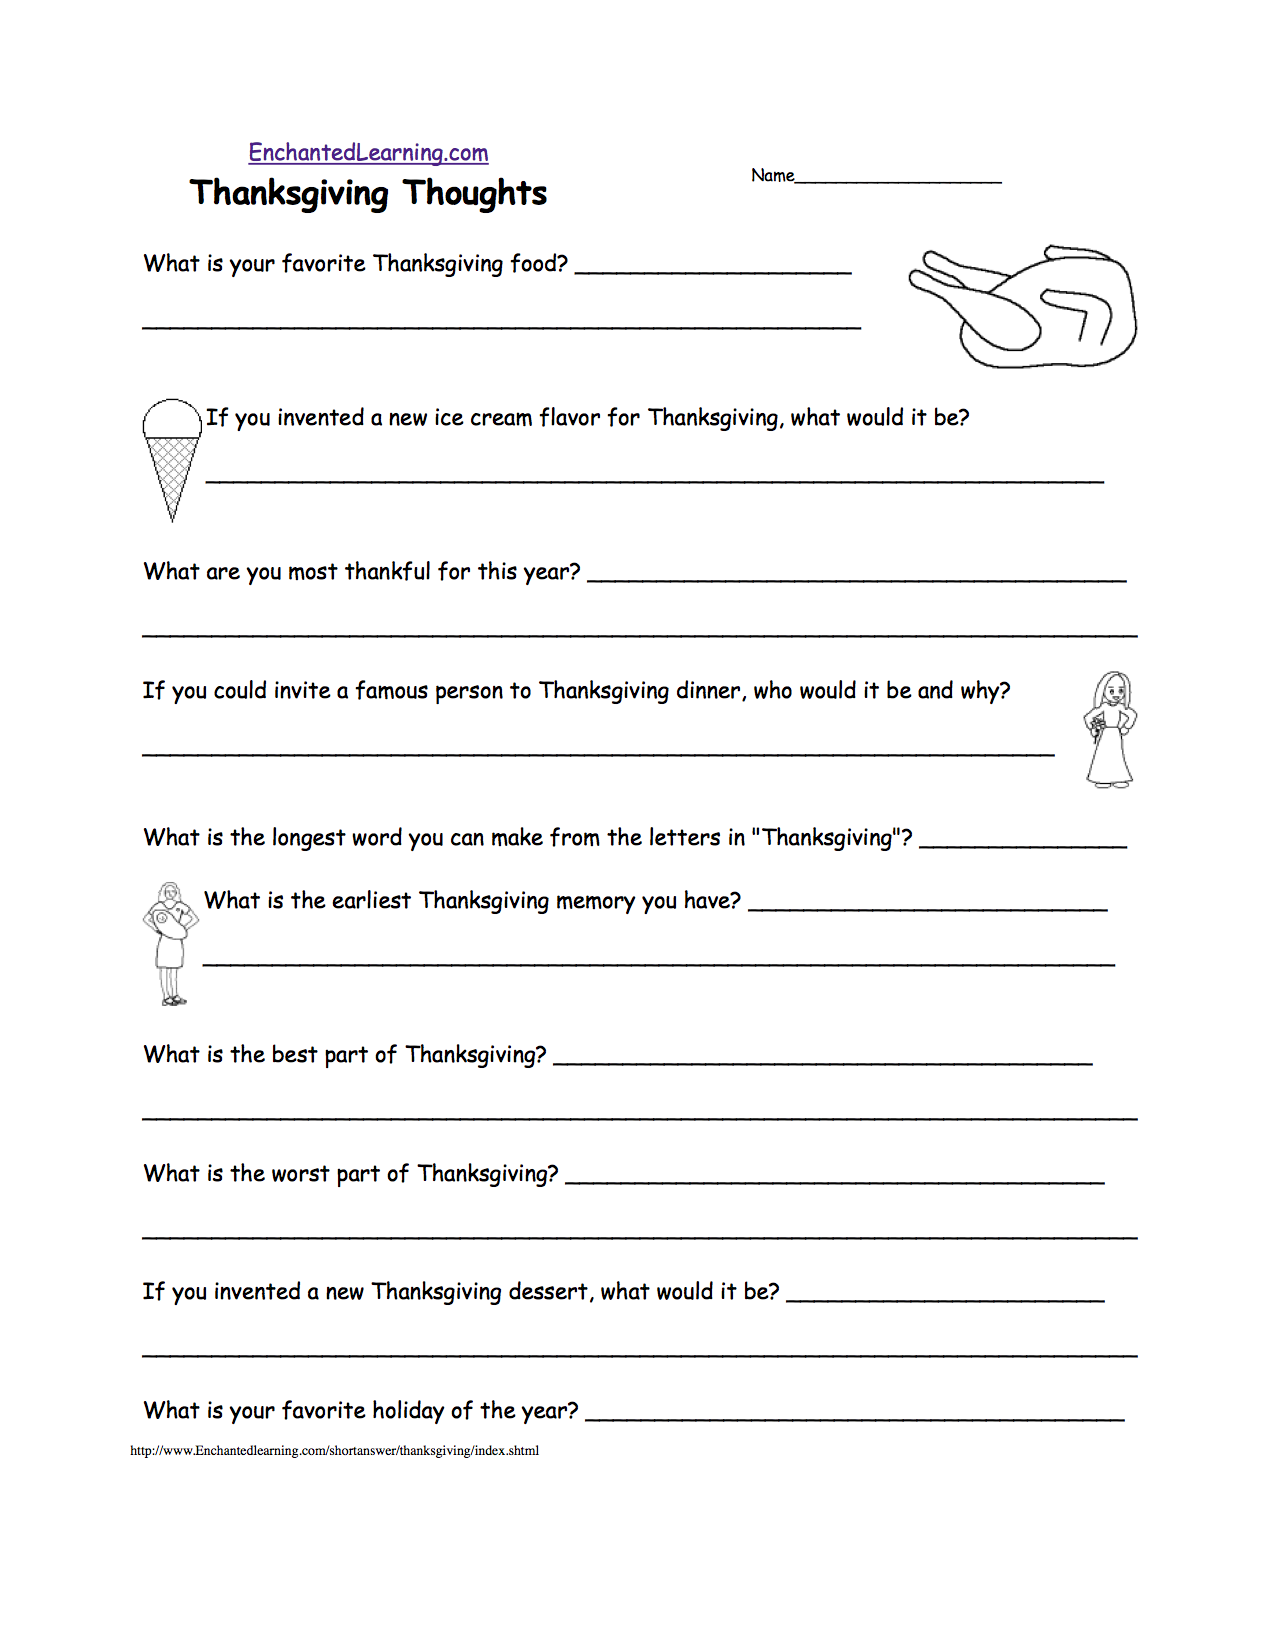 worksheet. Printable Thanksgiving Worksheets. Grass Fedjp ...